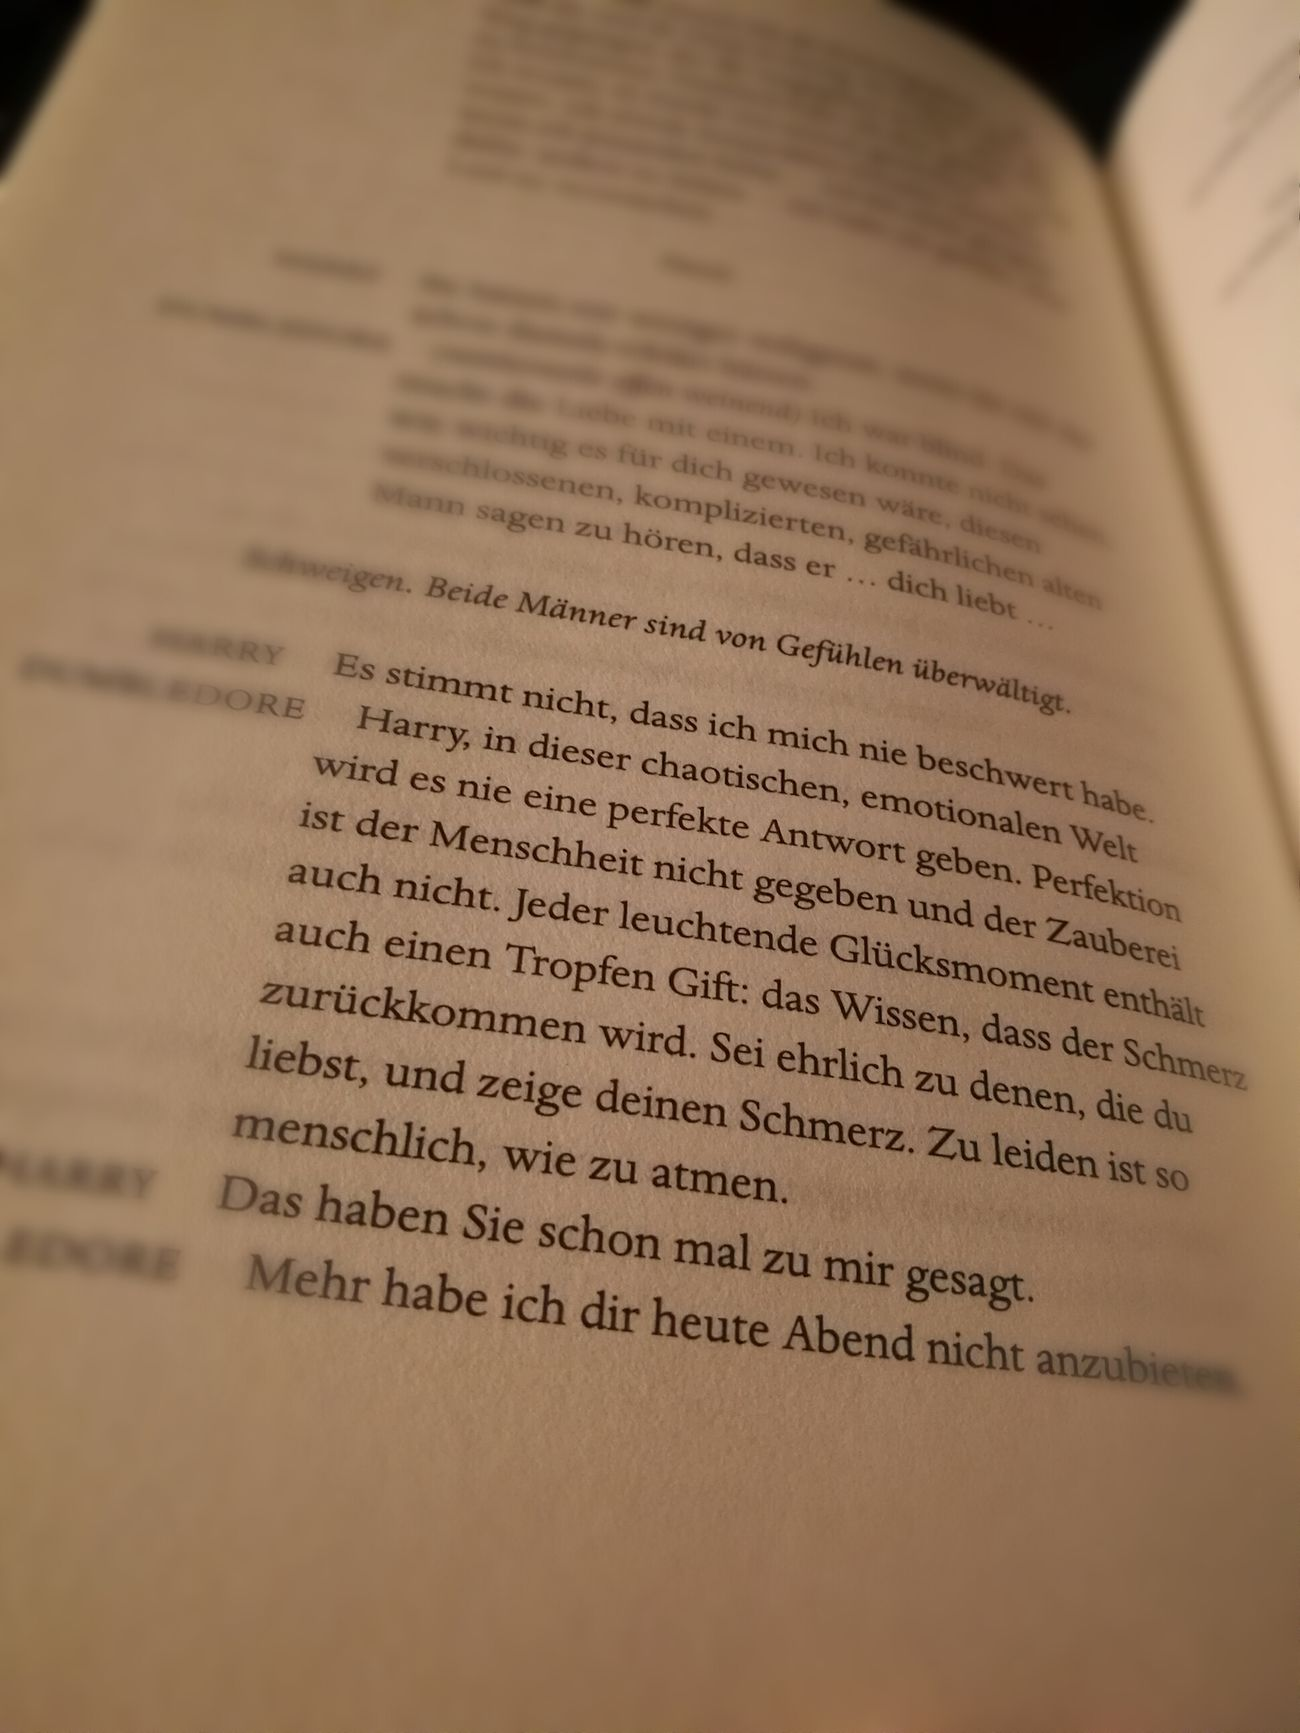 Harry Potter Harrypotter Cursed Child Harry Potter ❤ Harry Potter ⚡ Harry Potter And The Cursed Child German Quote German Quotes Zitat Dumbledore Wisdom Life Love Pain Human